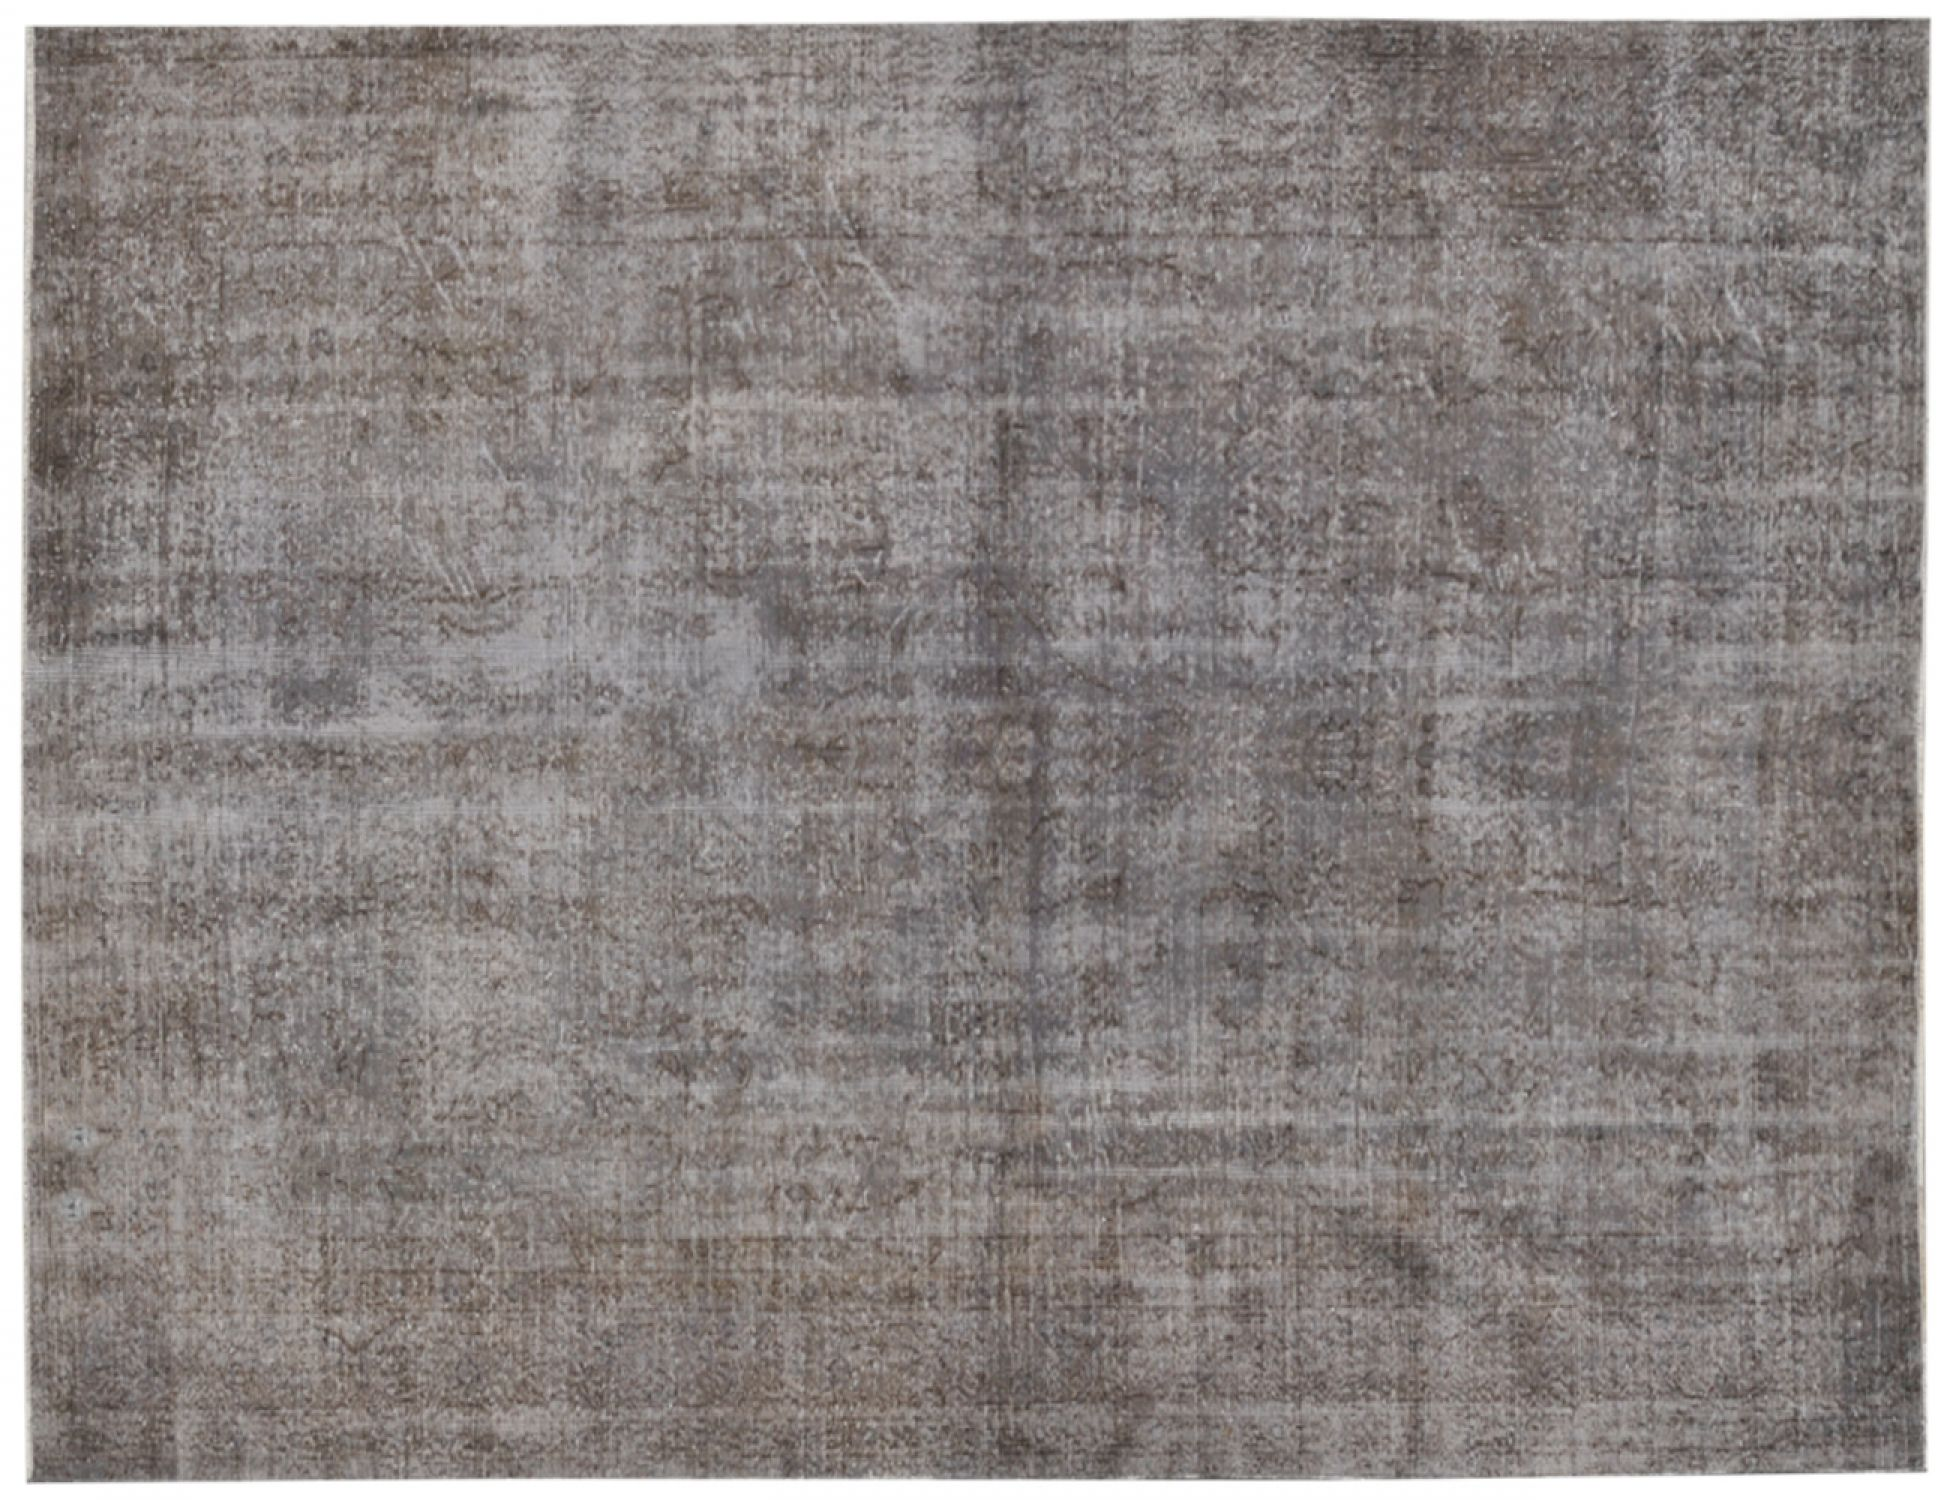 Vintage Carpet  grey <br/>309 x 213 cm